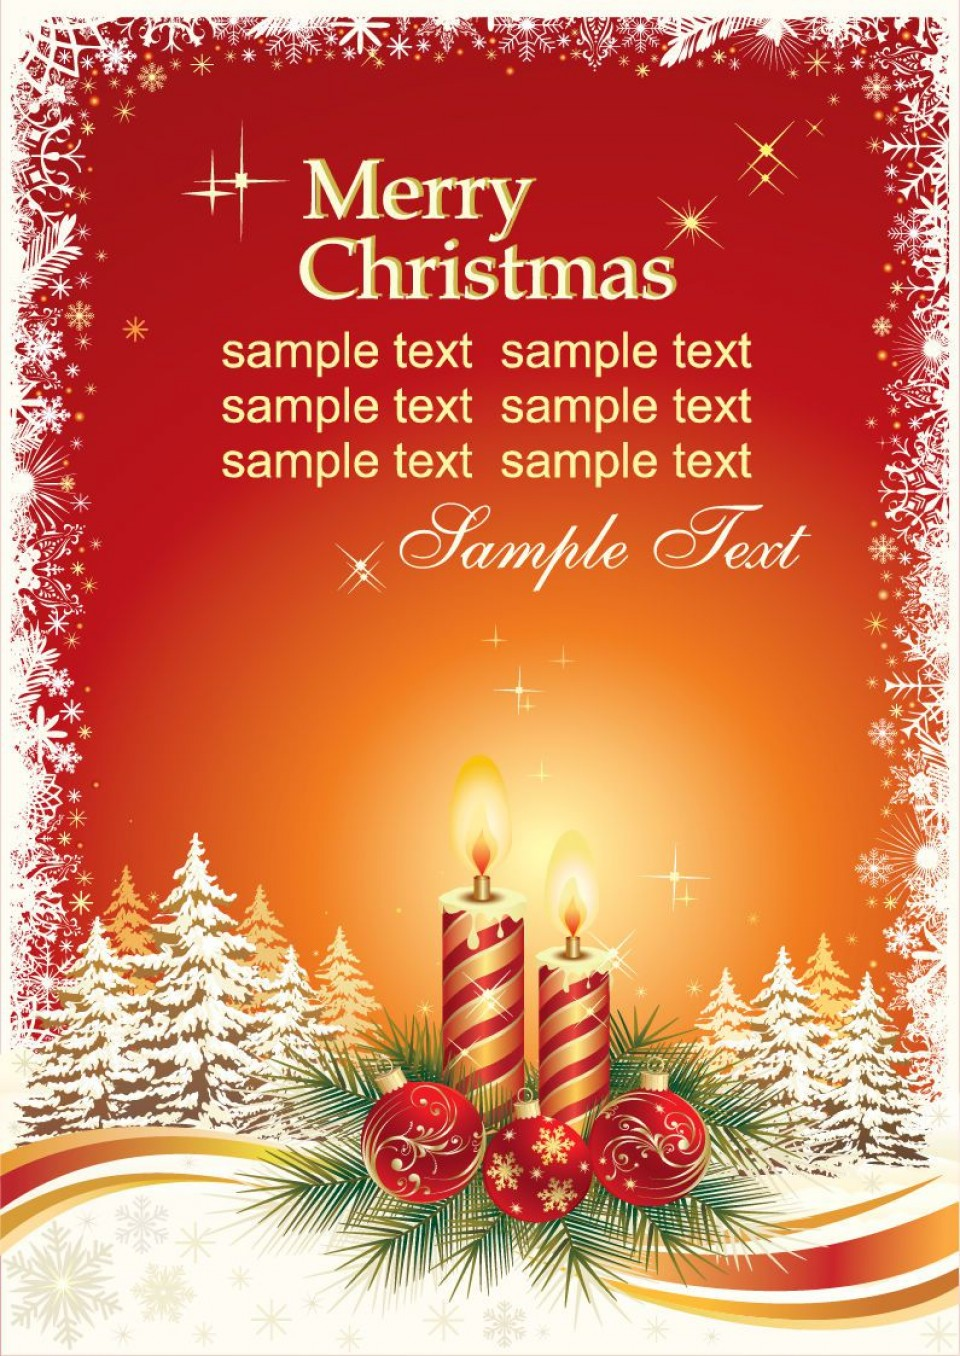 006 Staggering Christma Card Template Free Download Highest Clarity  Photo Xma Place960